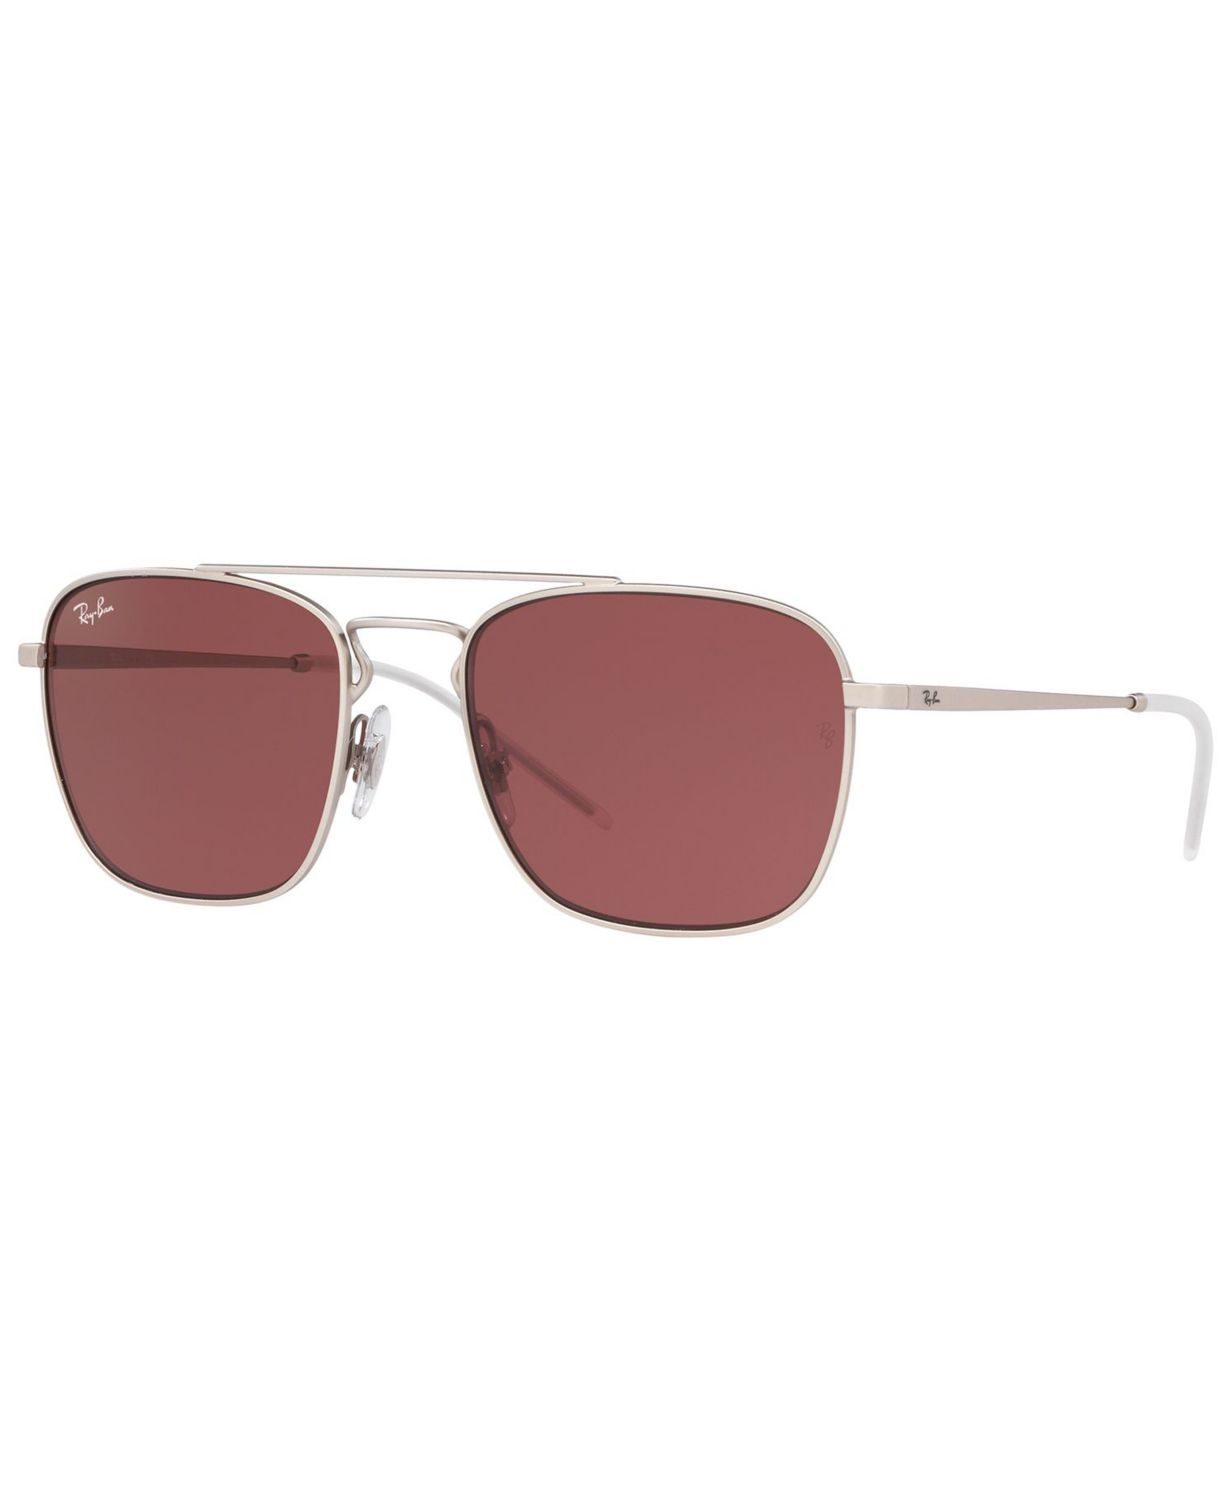 91386769e16 12 Best Sunglasses for Women in 2019  11 Styles for Any Face Shape